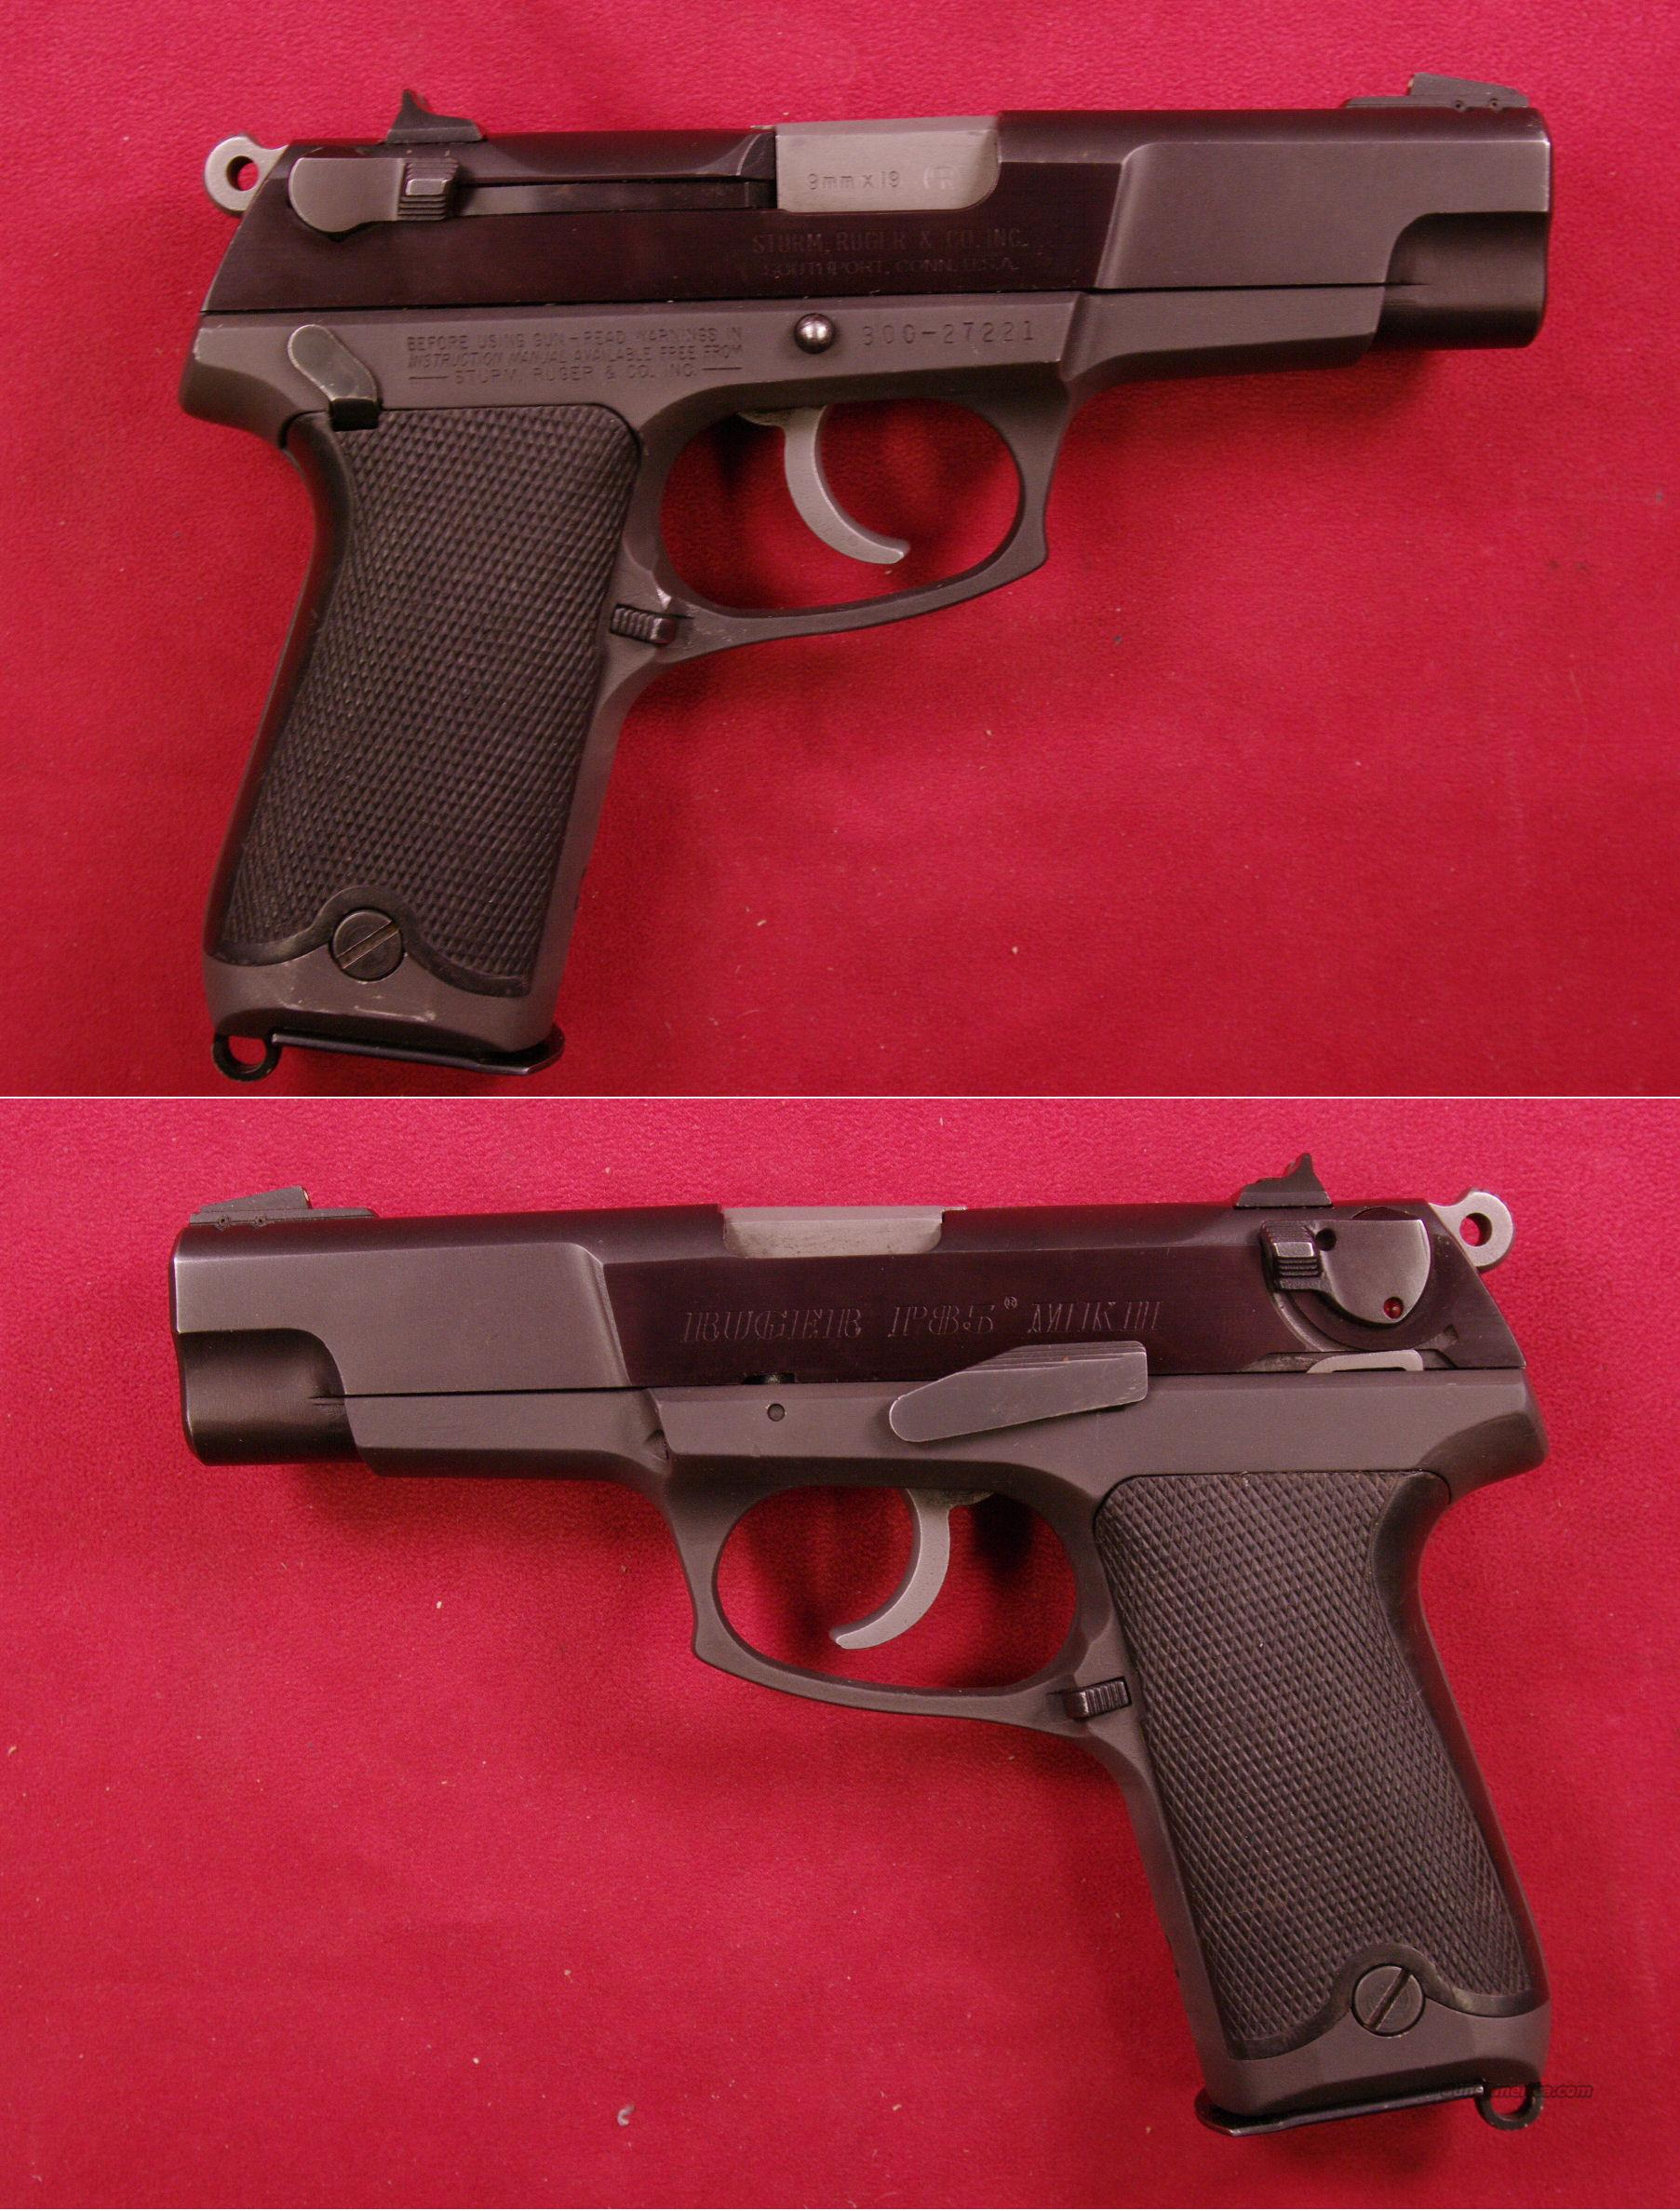 Ruger P85 9mm   Guns > Pistols > Ruger Semi-Auto Pistols > P-Series